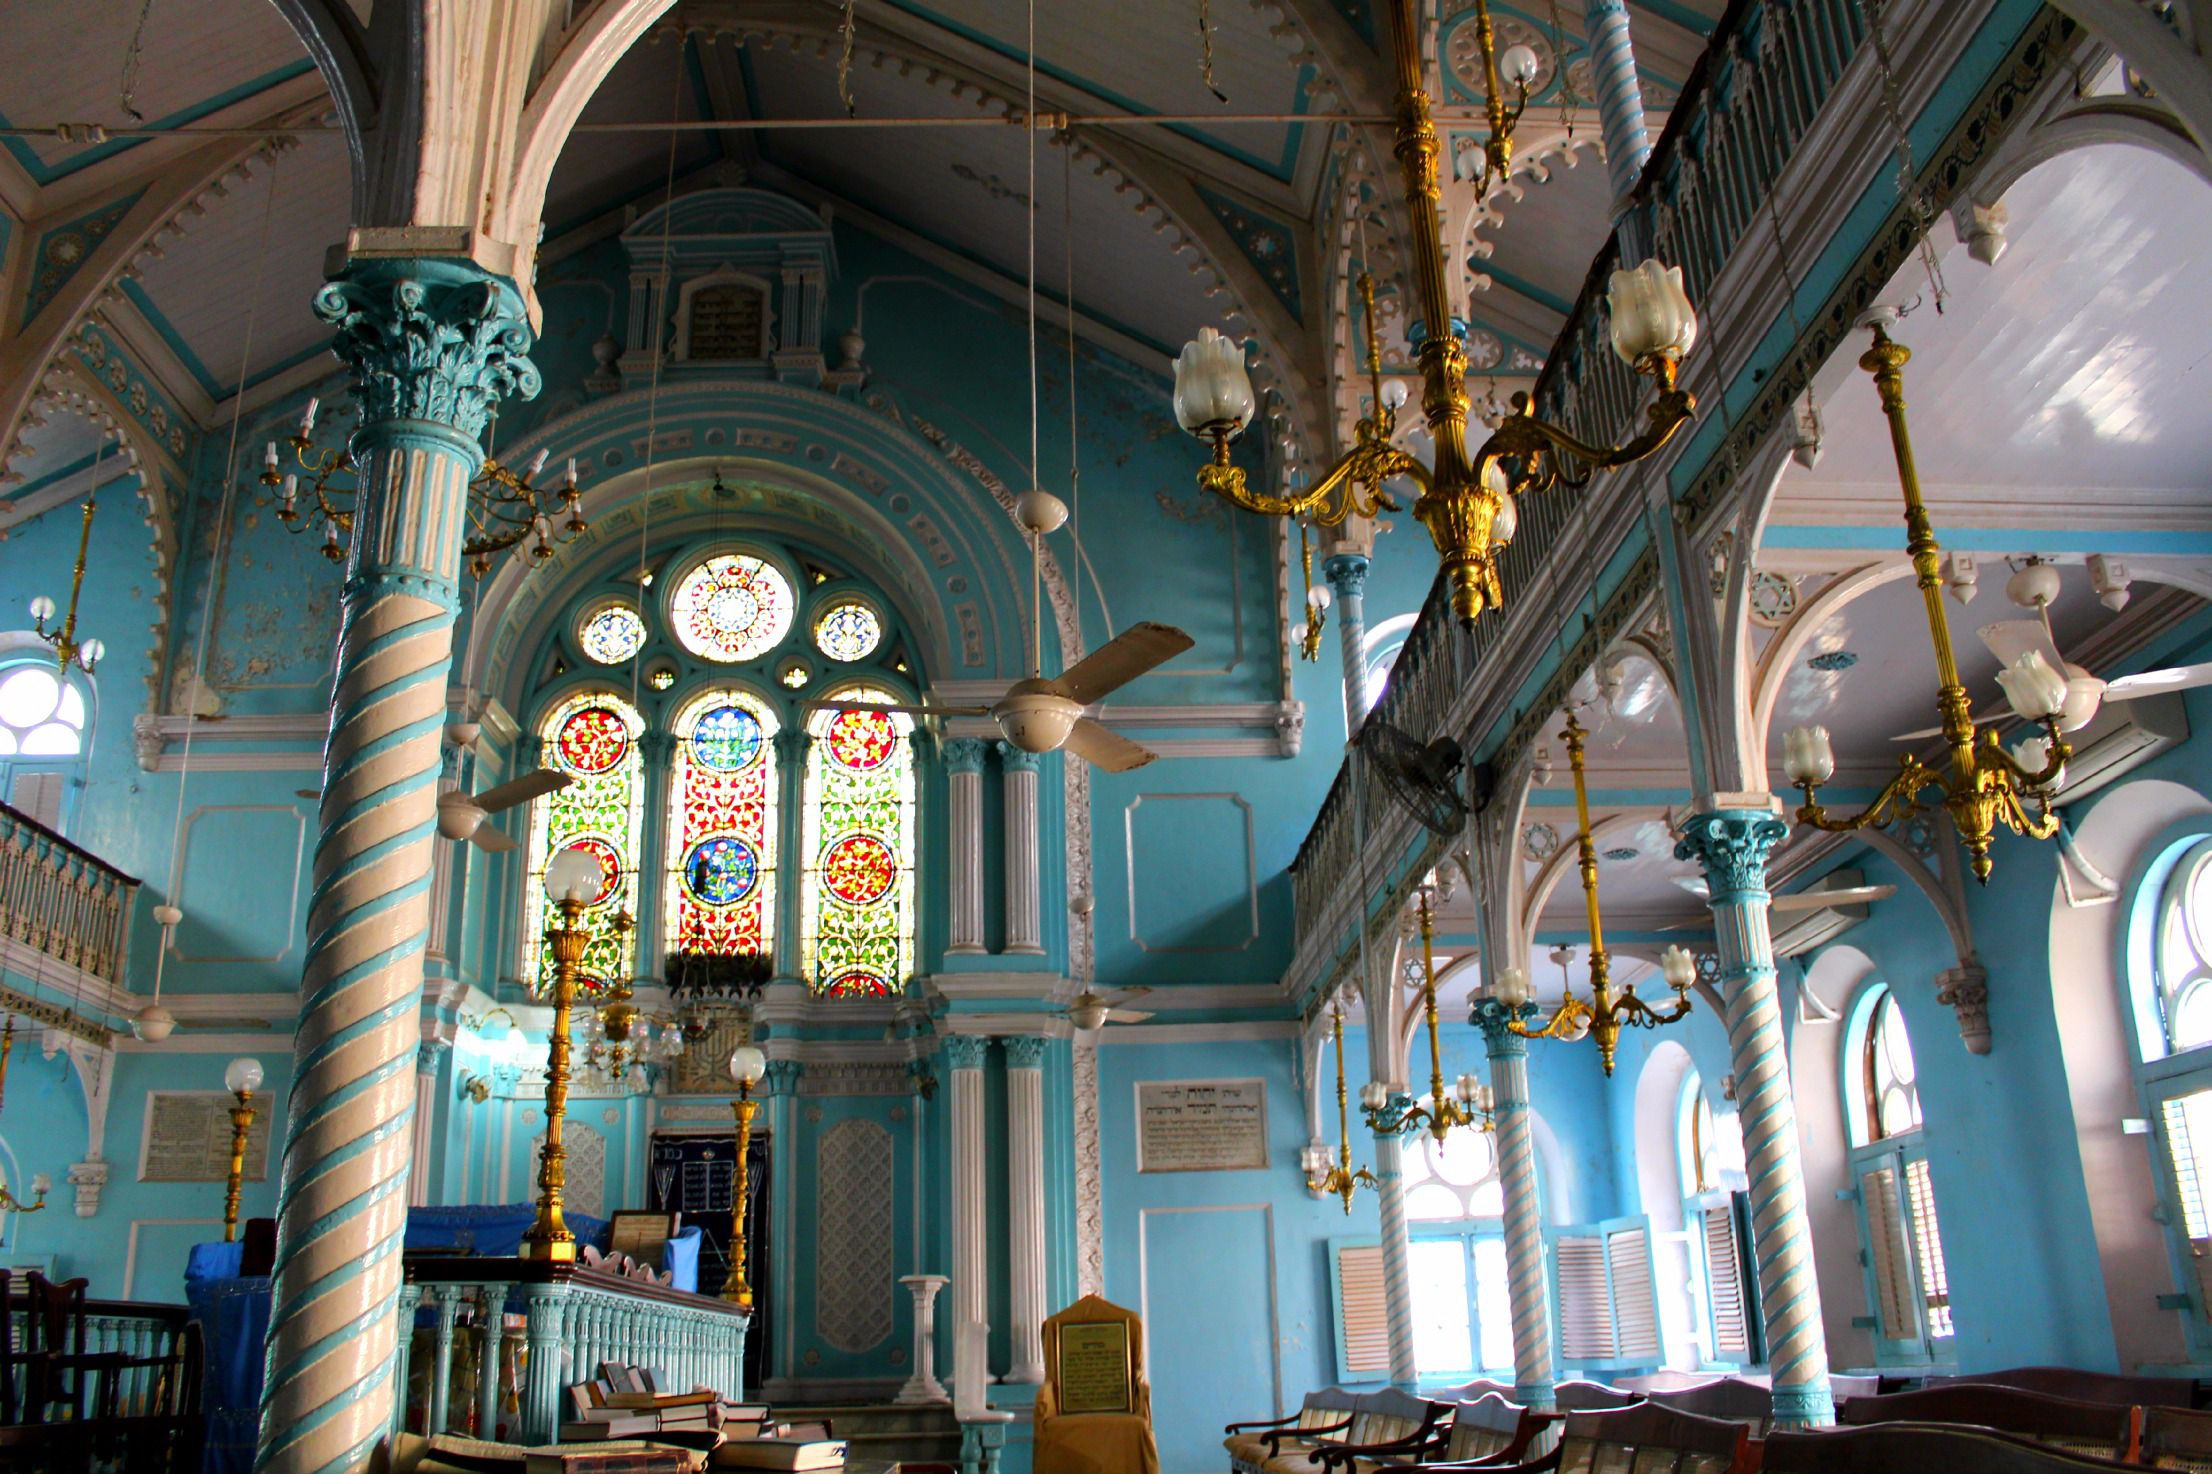 Bombay Blue: The interior of the Knesset Eliyahoo synagogue.